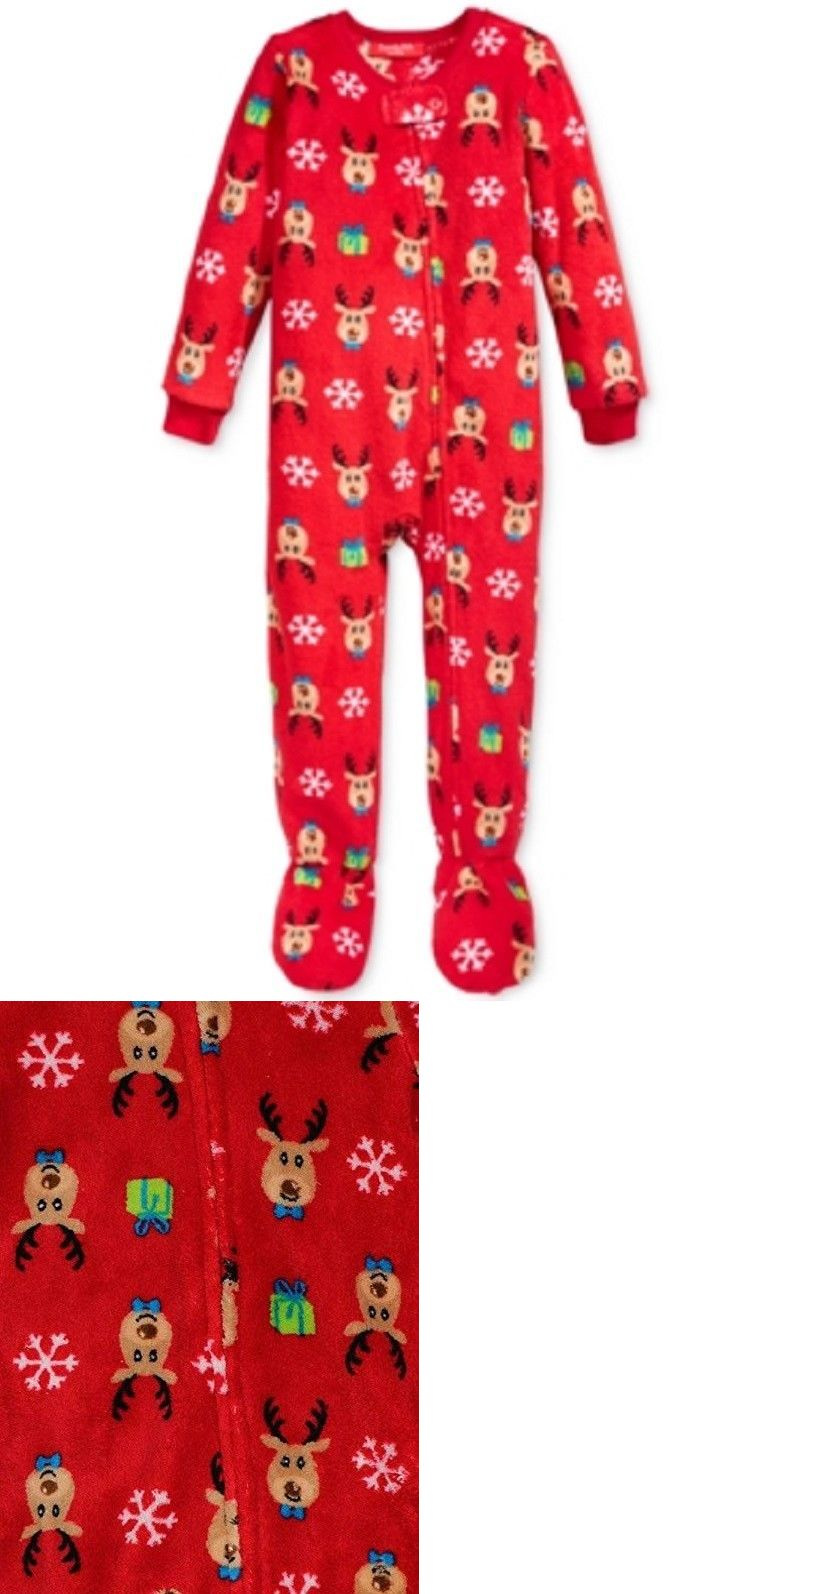 df93fe3057 Sleepwear 163400  Family Pajamas Unisex Baby Boys Or Girls Christmas  Reindeer Footed Pj S -  BUY IT NOW ONLY   11.69 on  eBay  sleepwear  family   pajamas ...